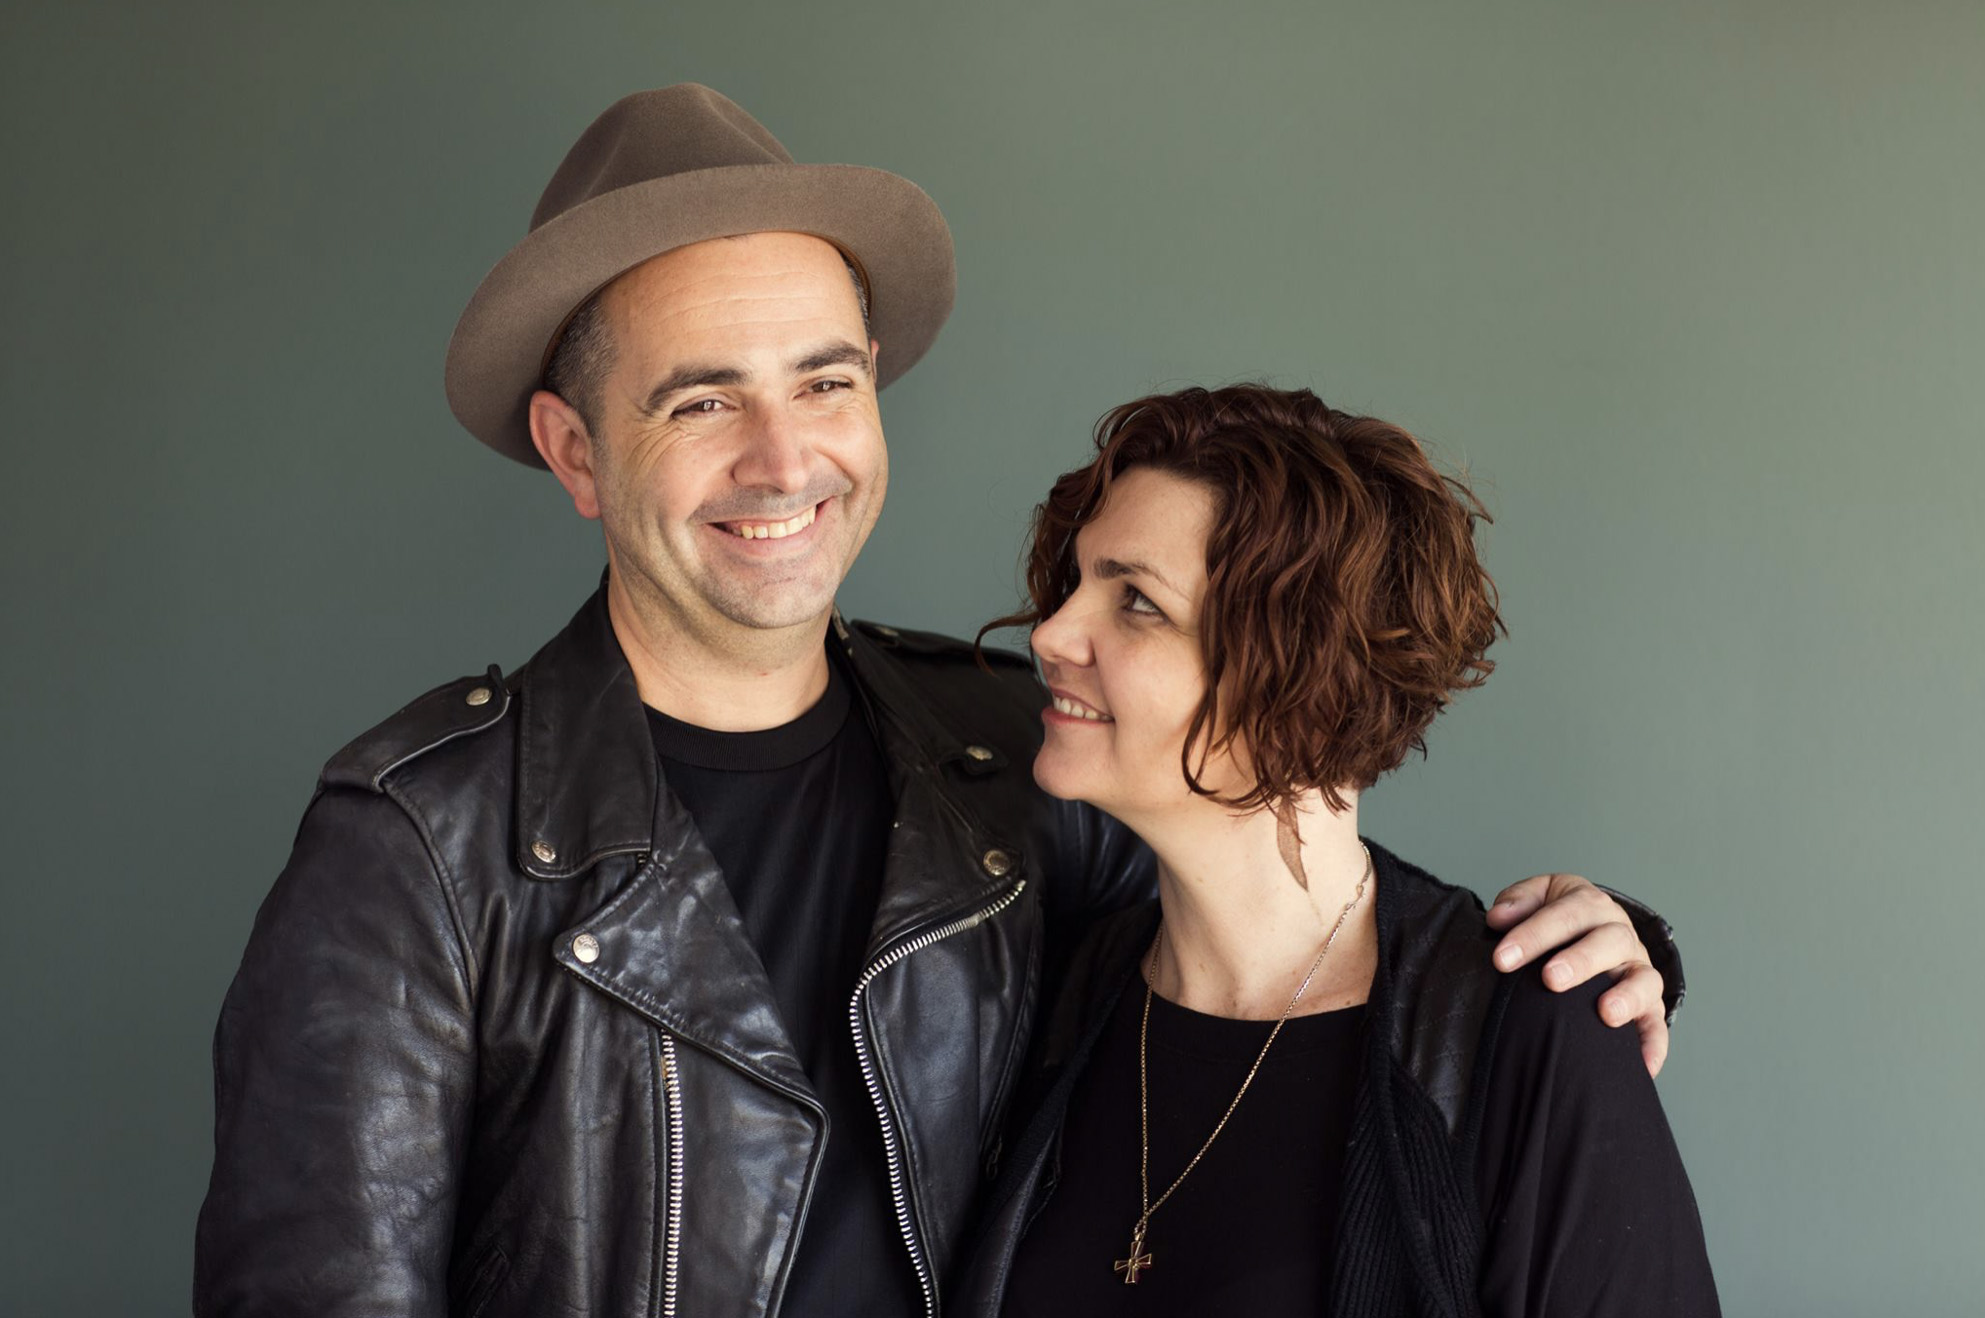 Simon is pictured here with his wife, Melanie.